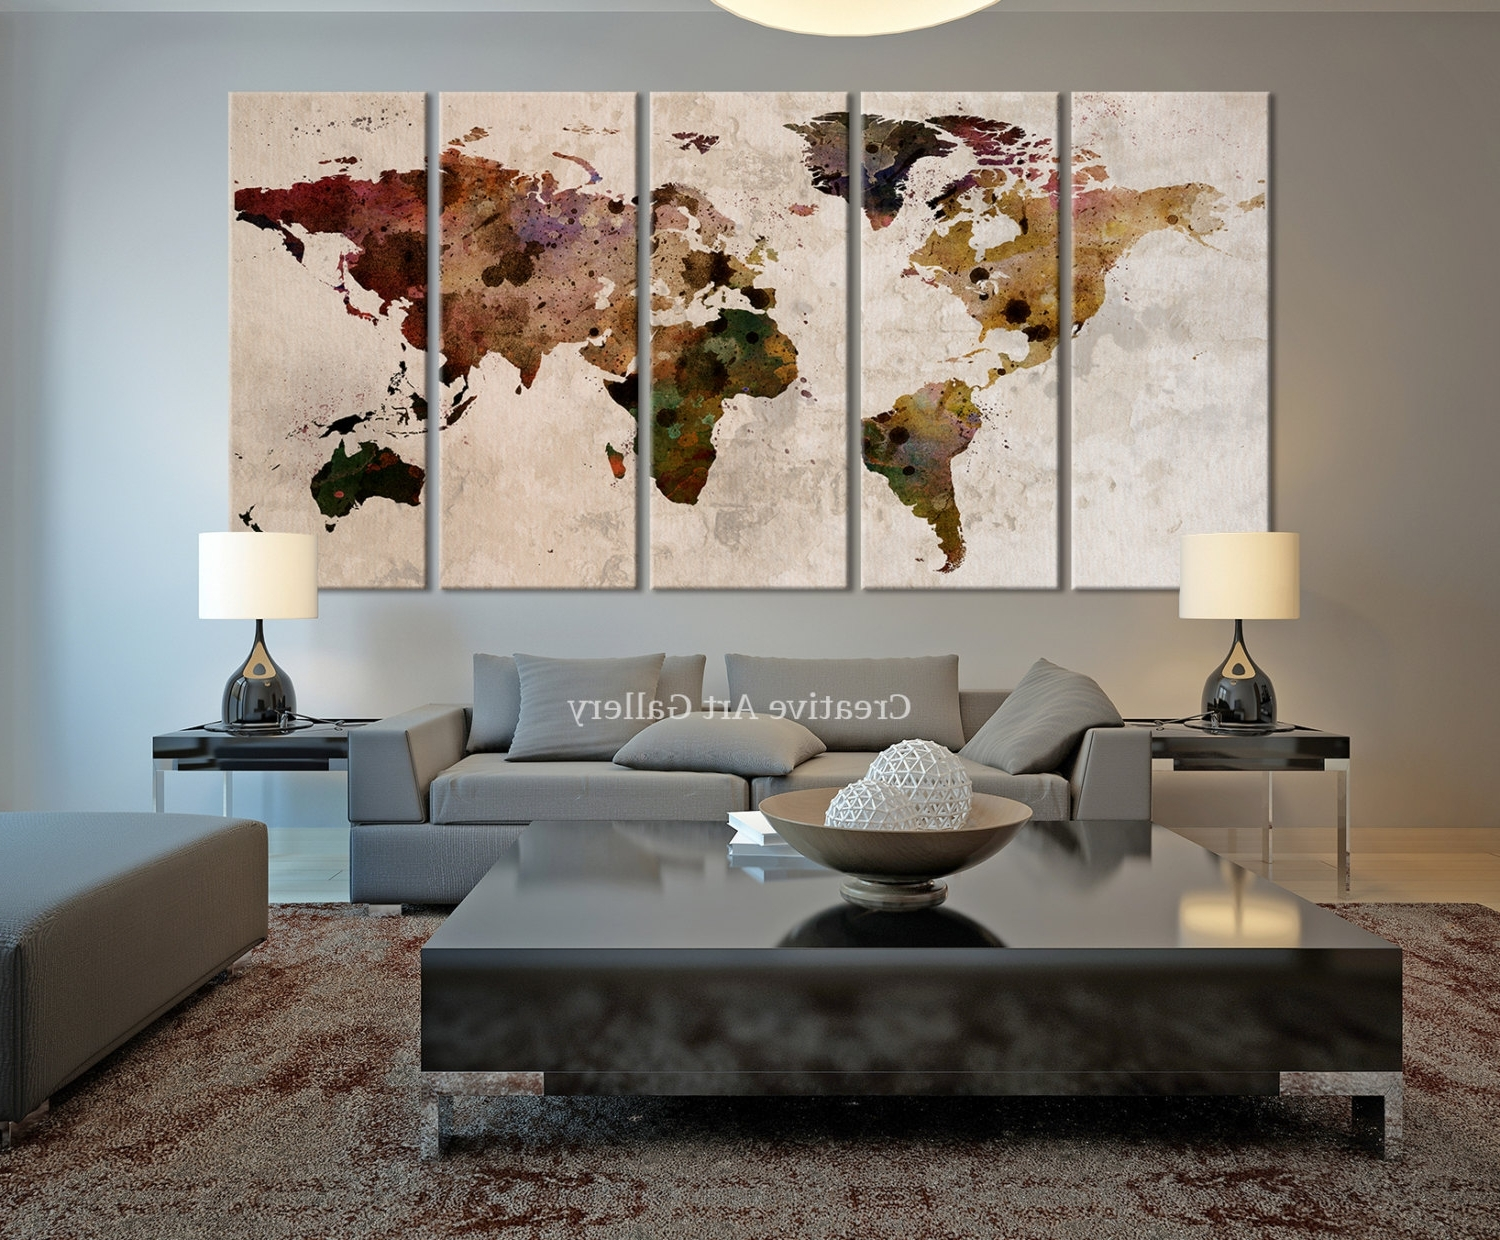 Preferred 20+ Rustic Wall Decor Ideas To Help You Add Rustic Beauty To Your With Regard To Abstract World Map Wall Art (View 15 of 15)